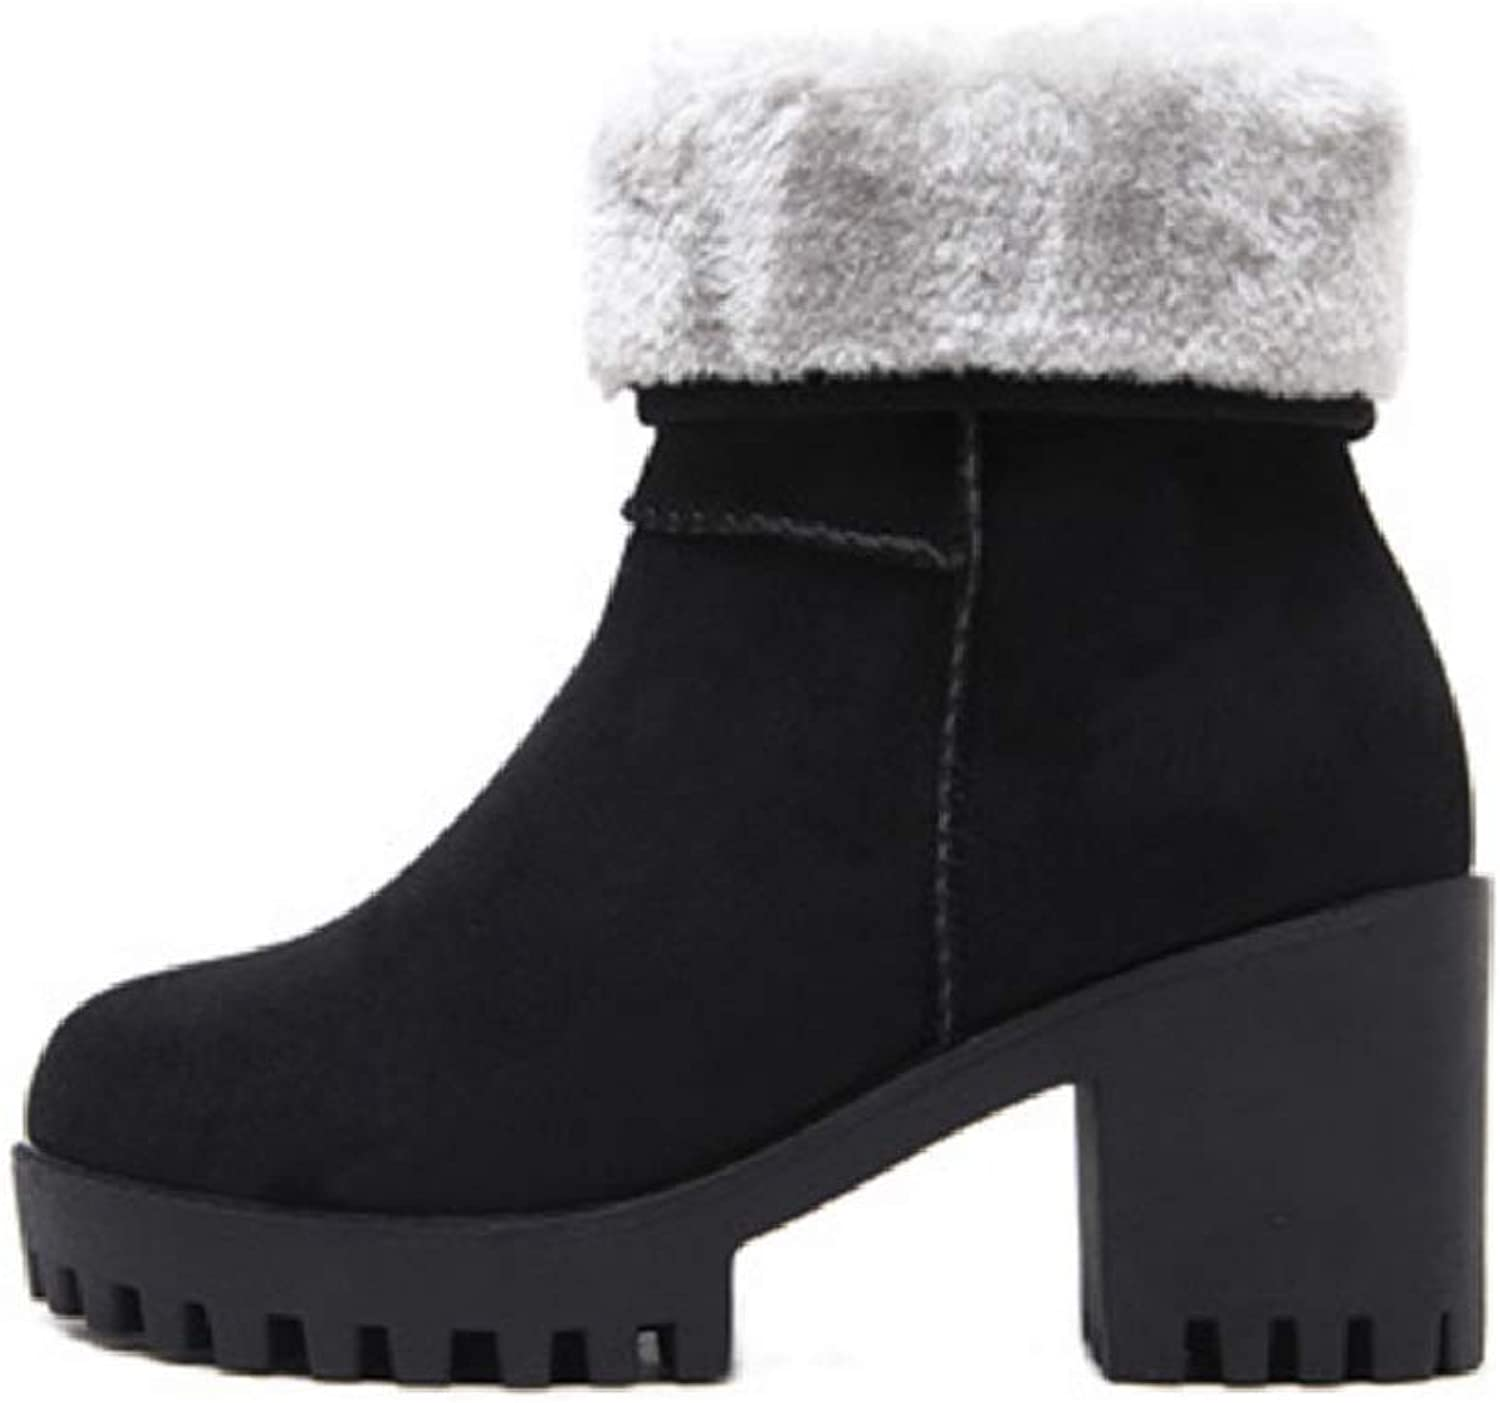 Womens Ladies Winter shoes Flock Warm Snow Boots Fur Lined Chunky Block Elegant Heel Ankle Booties Outdoor Short Bootie Vintage Calf Boots